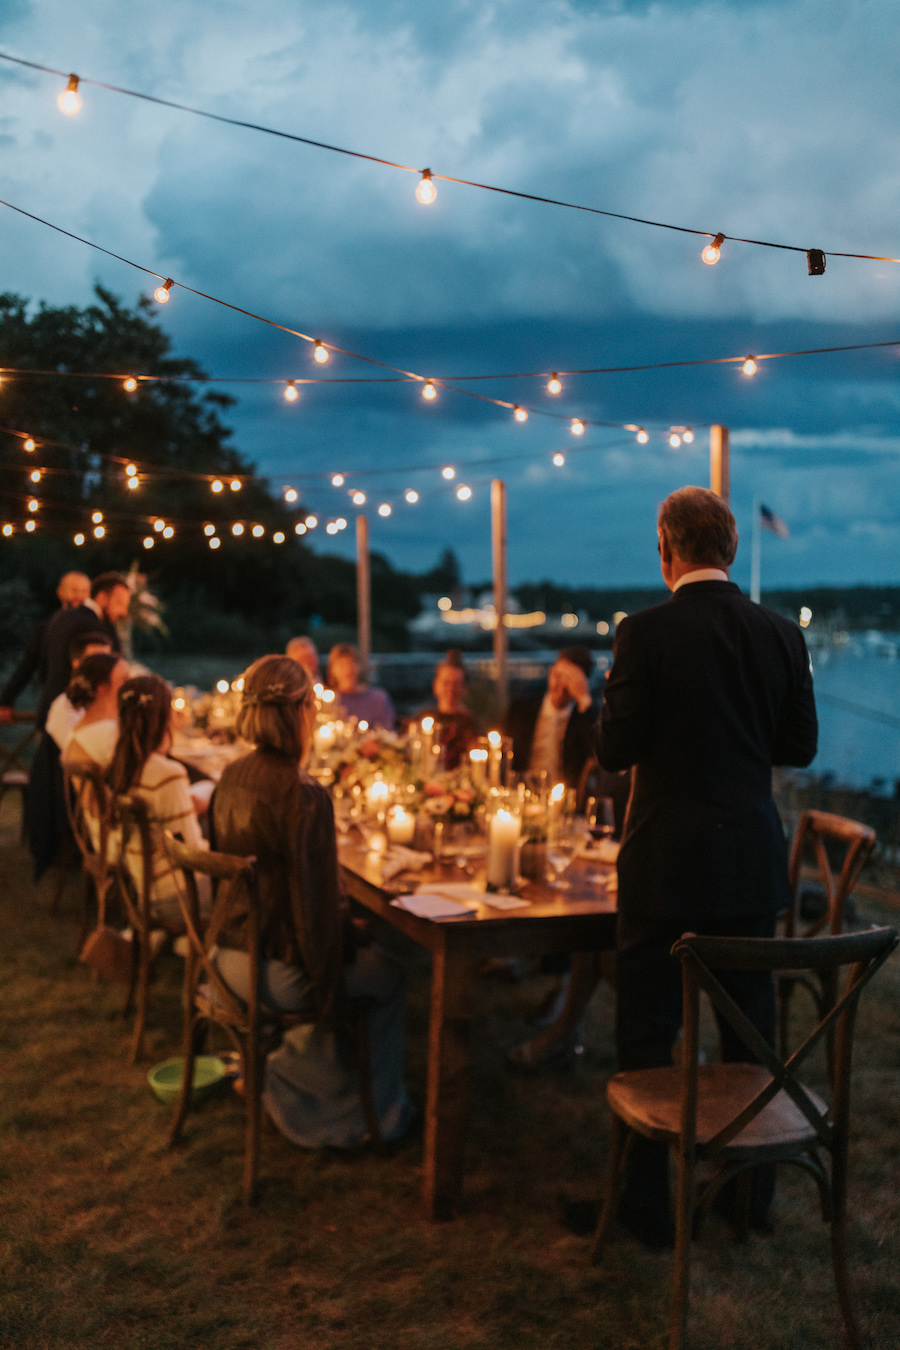 Guest gives toast to the newlyweds as the sun sets and candlelight glows.